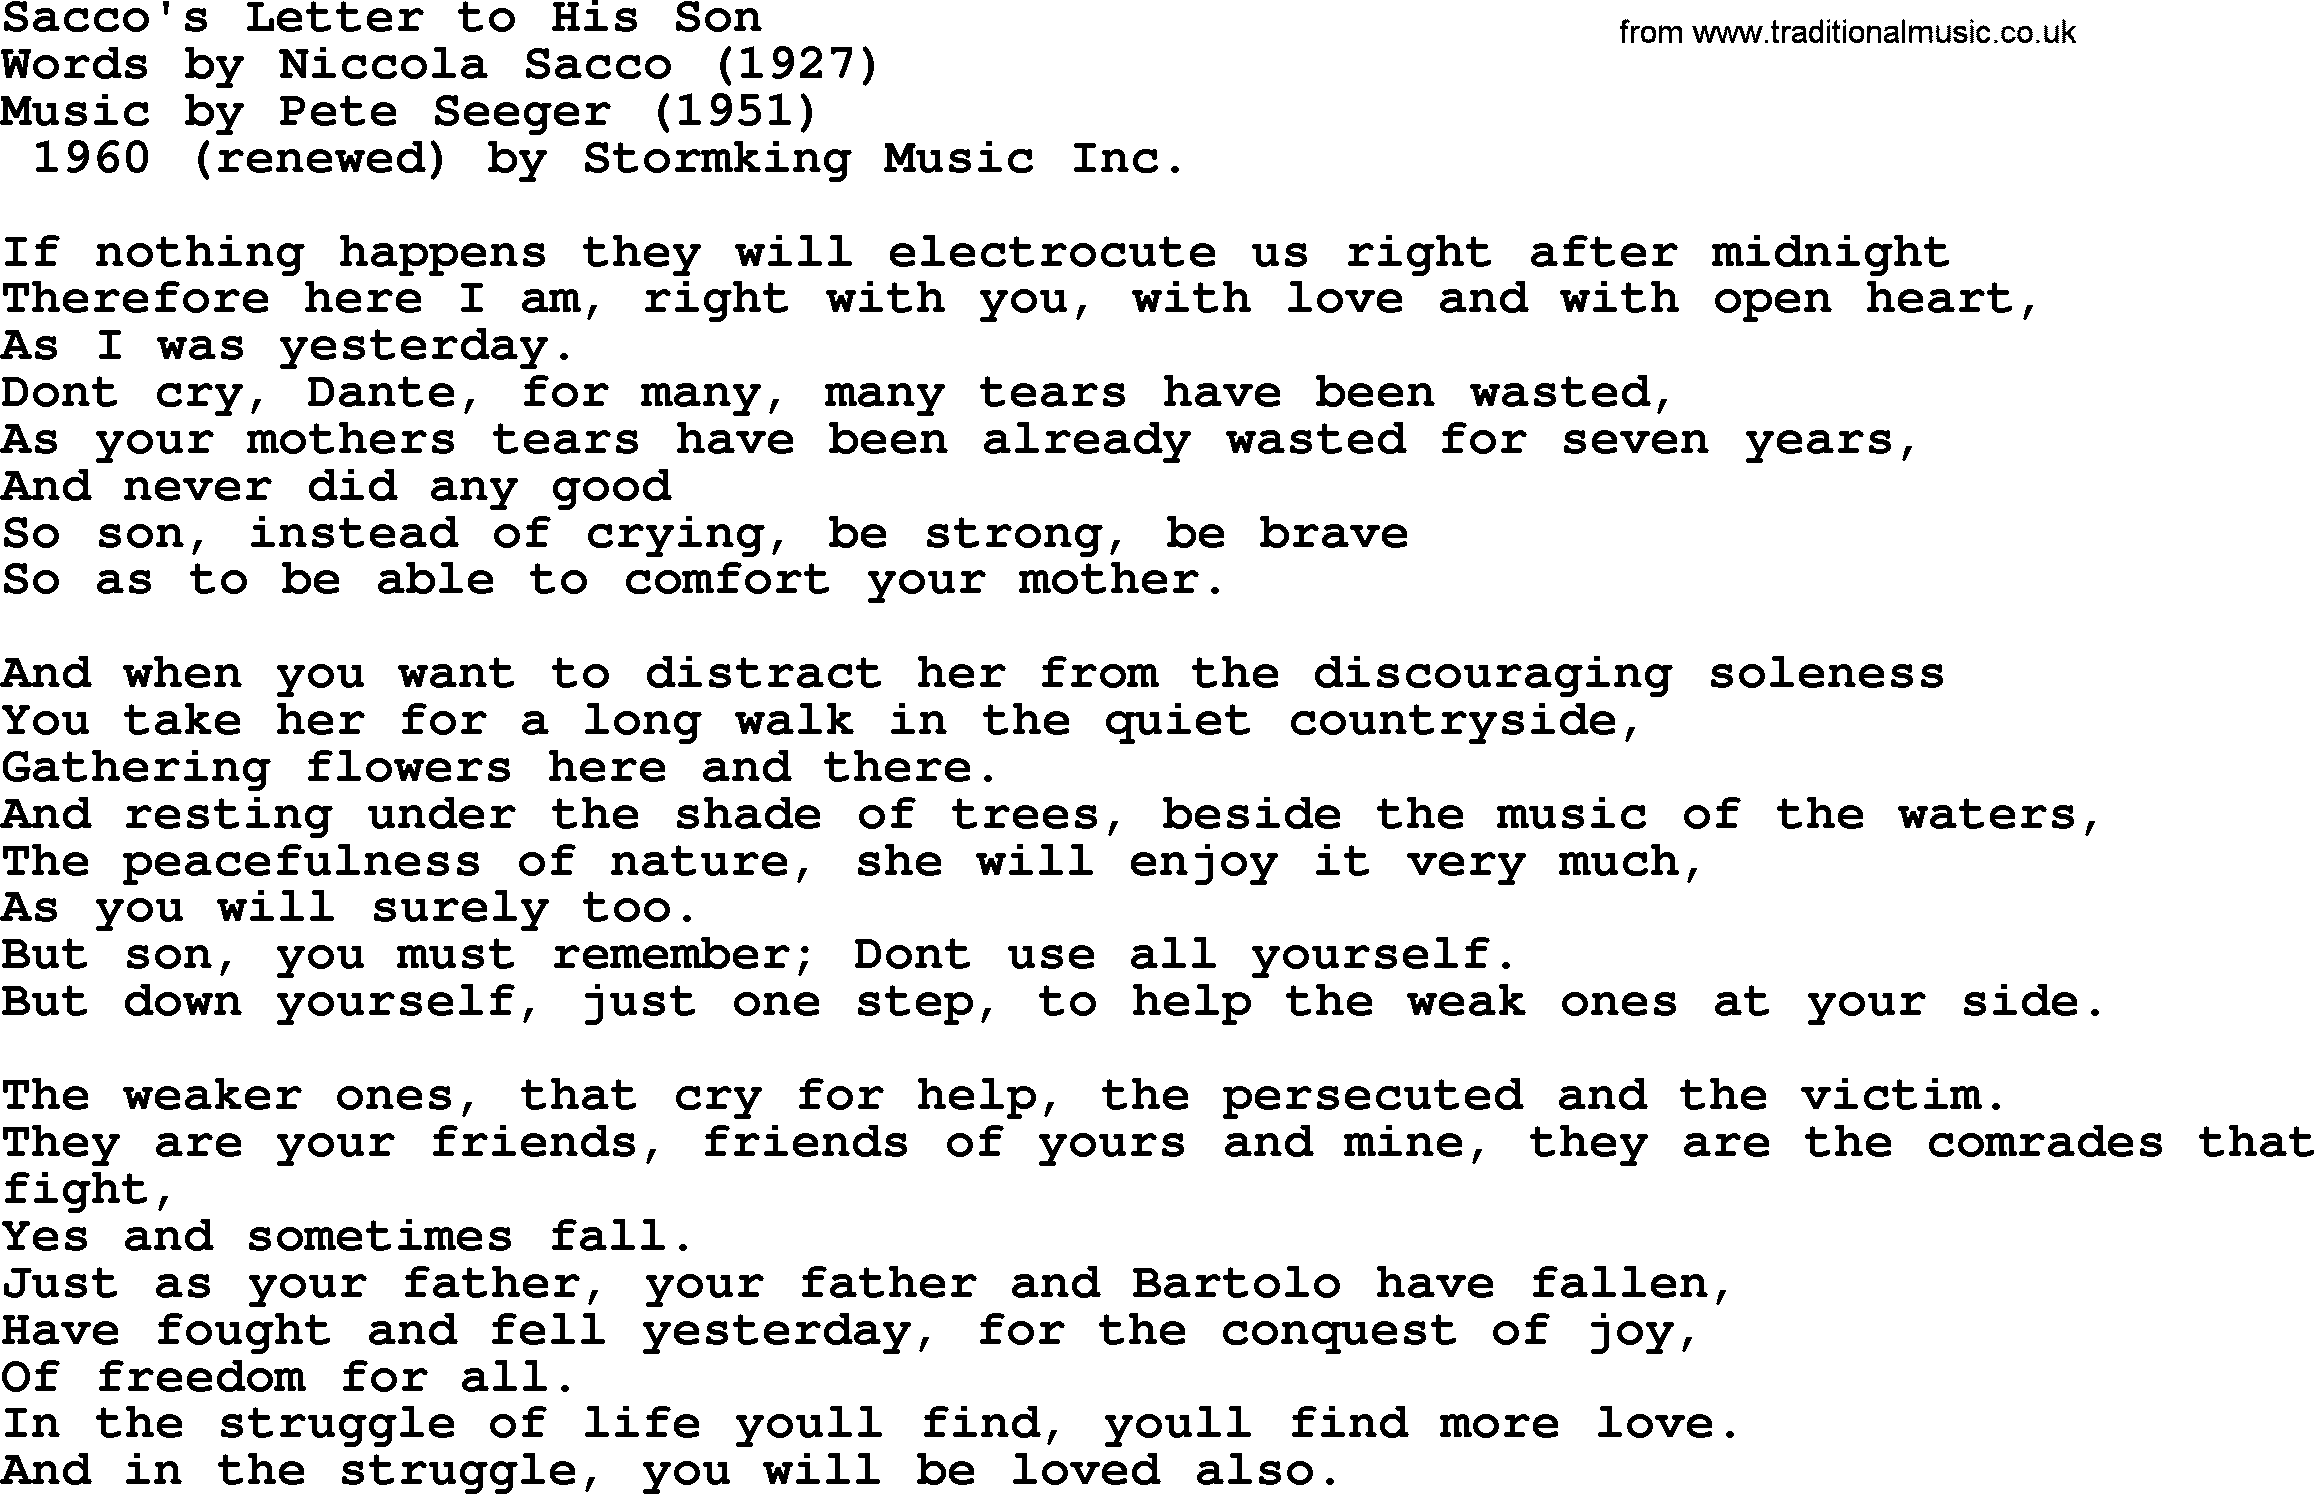 Pete Seeger song   Sacco's Letter to His Son lyrics